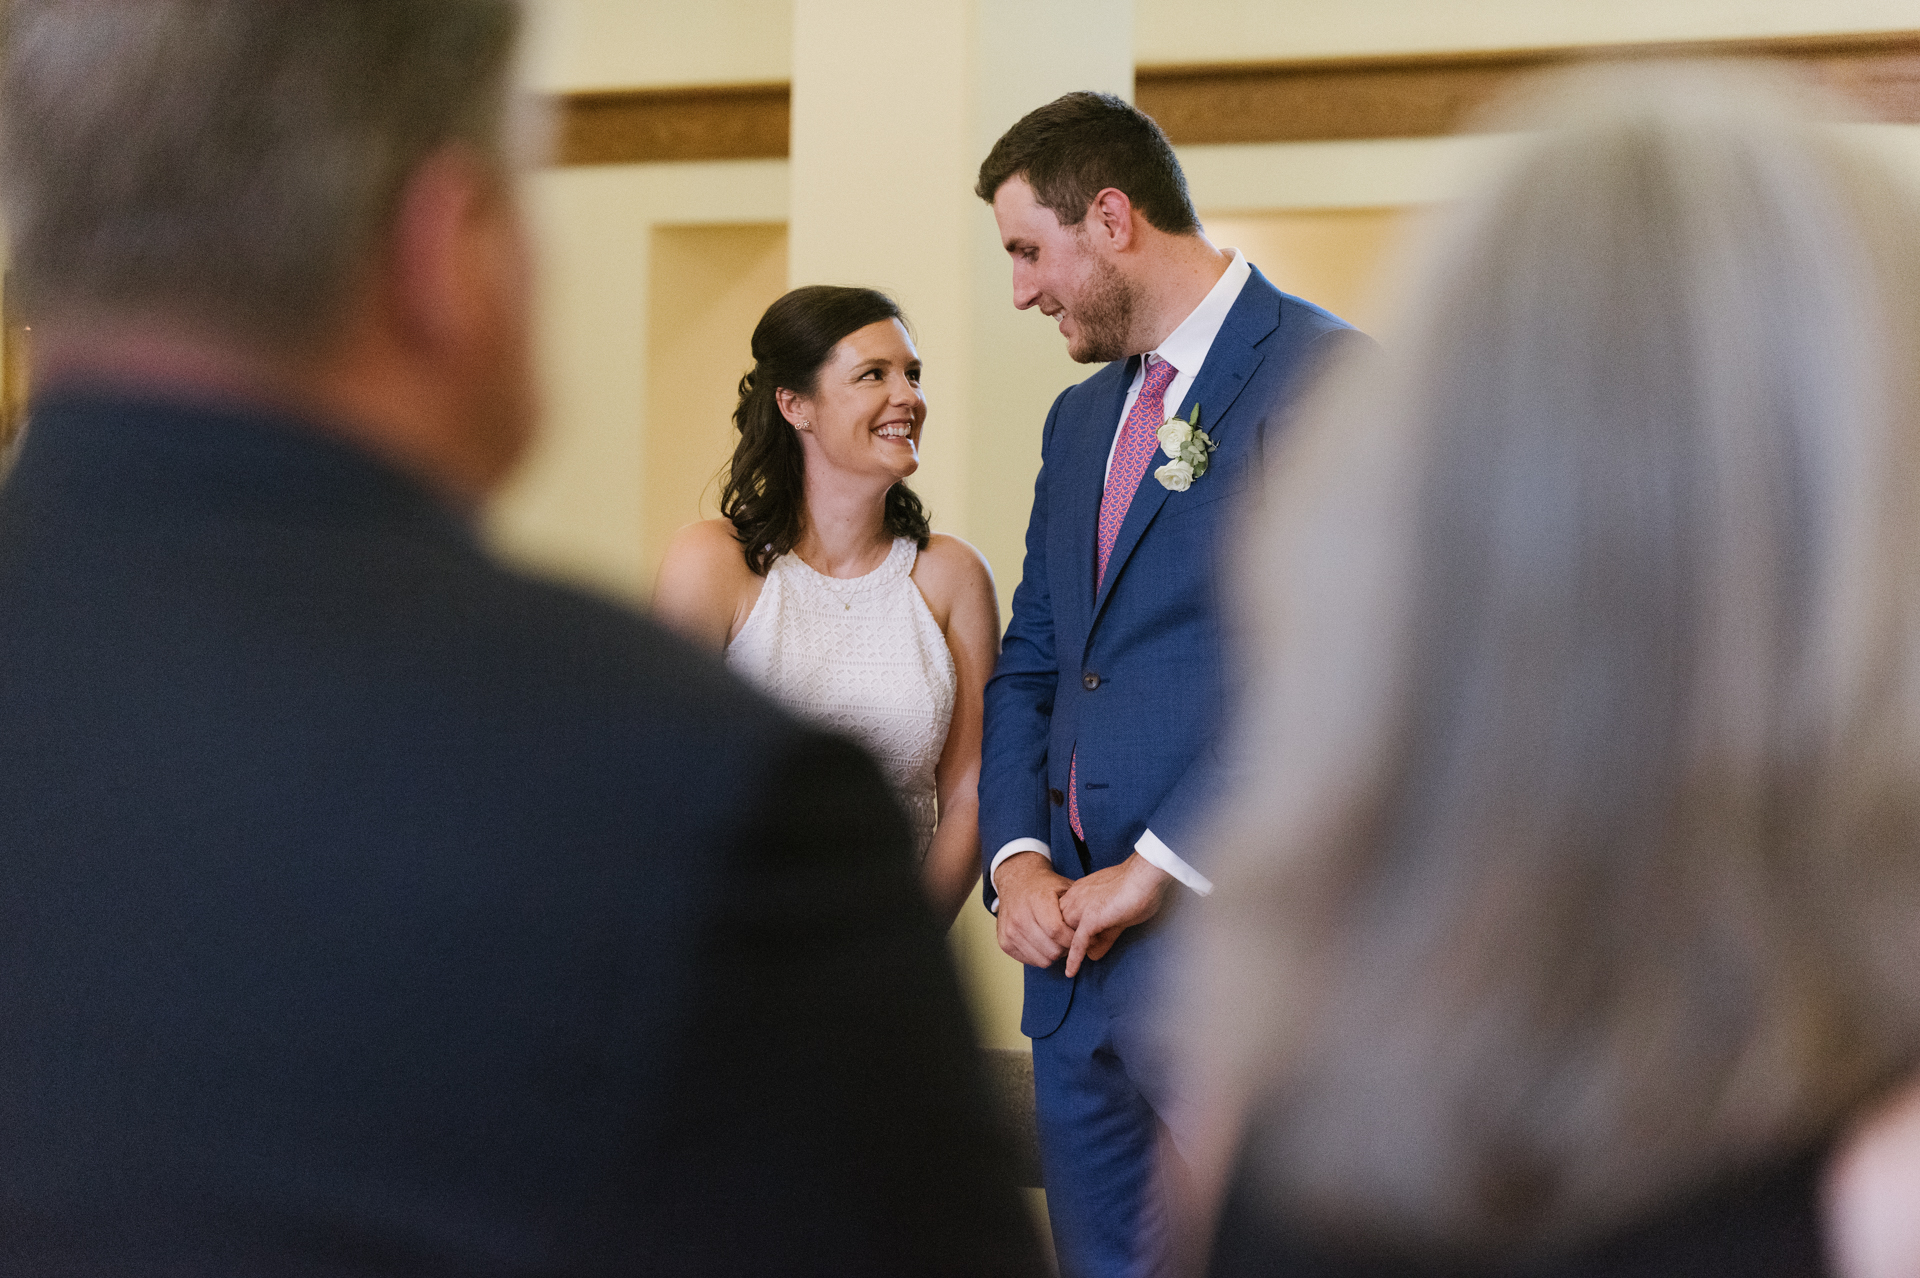 St. Mary of the Angels Chapel, Loudonville, NY Wedding Pic | Two marriers look at each other joyfully